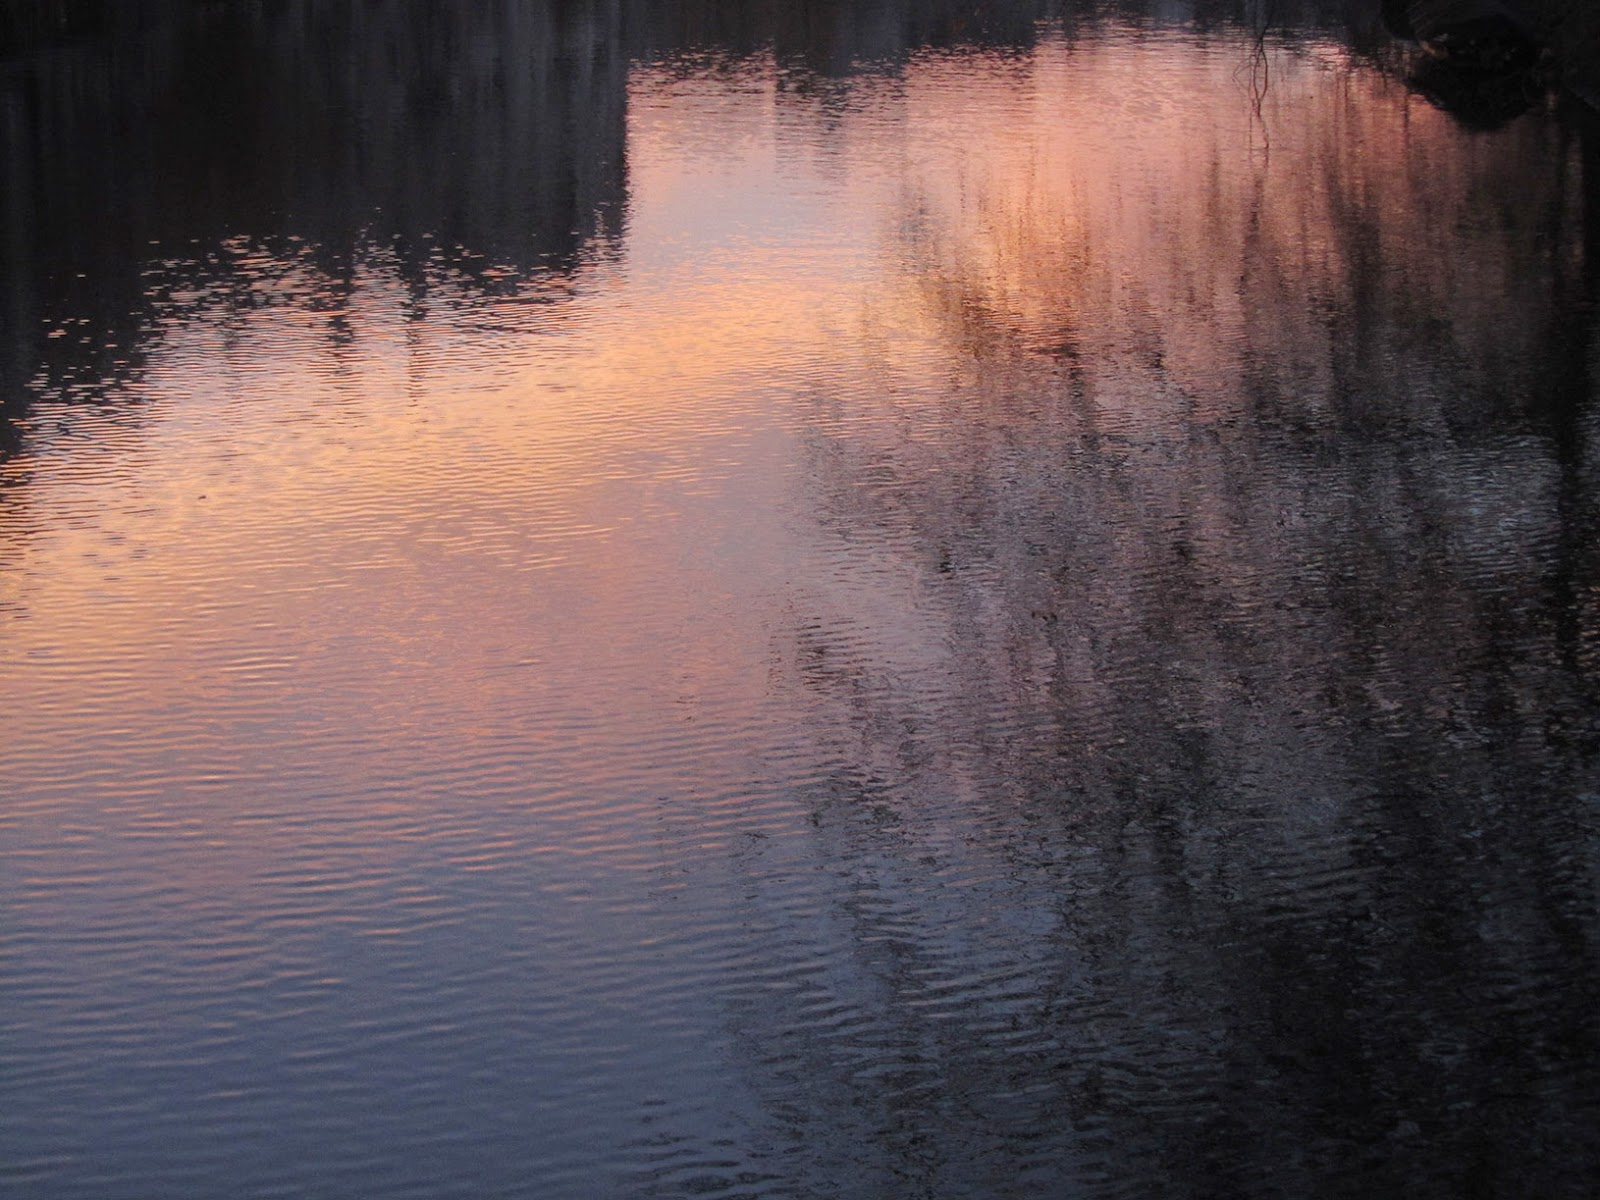 reflection of a pink sunrise in a canal